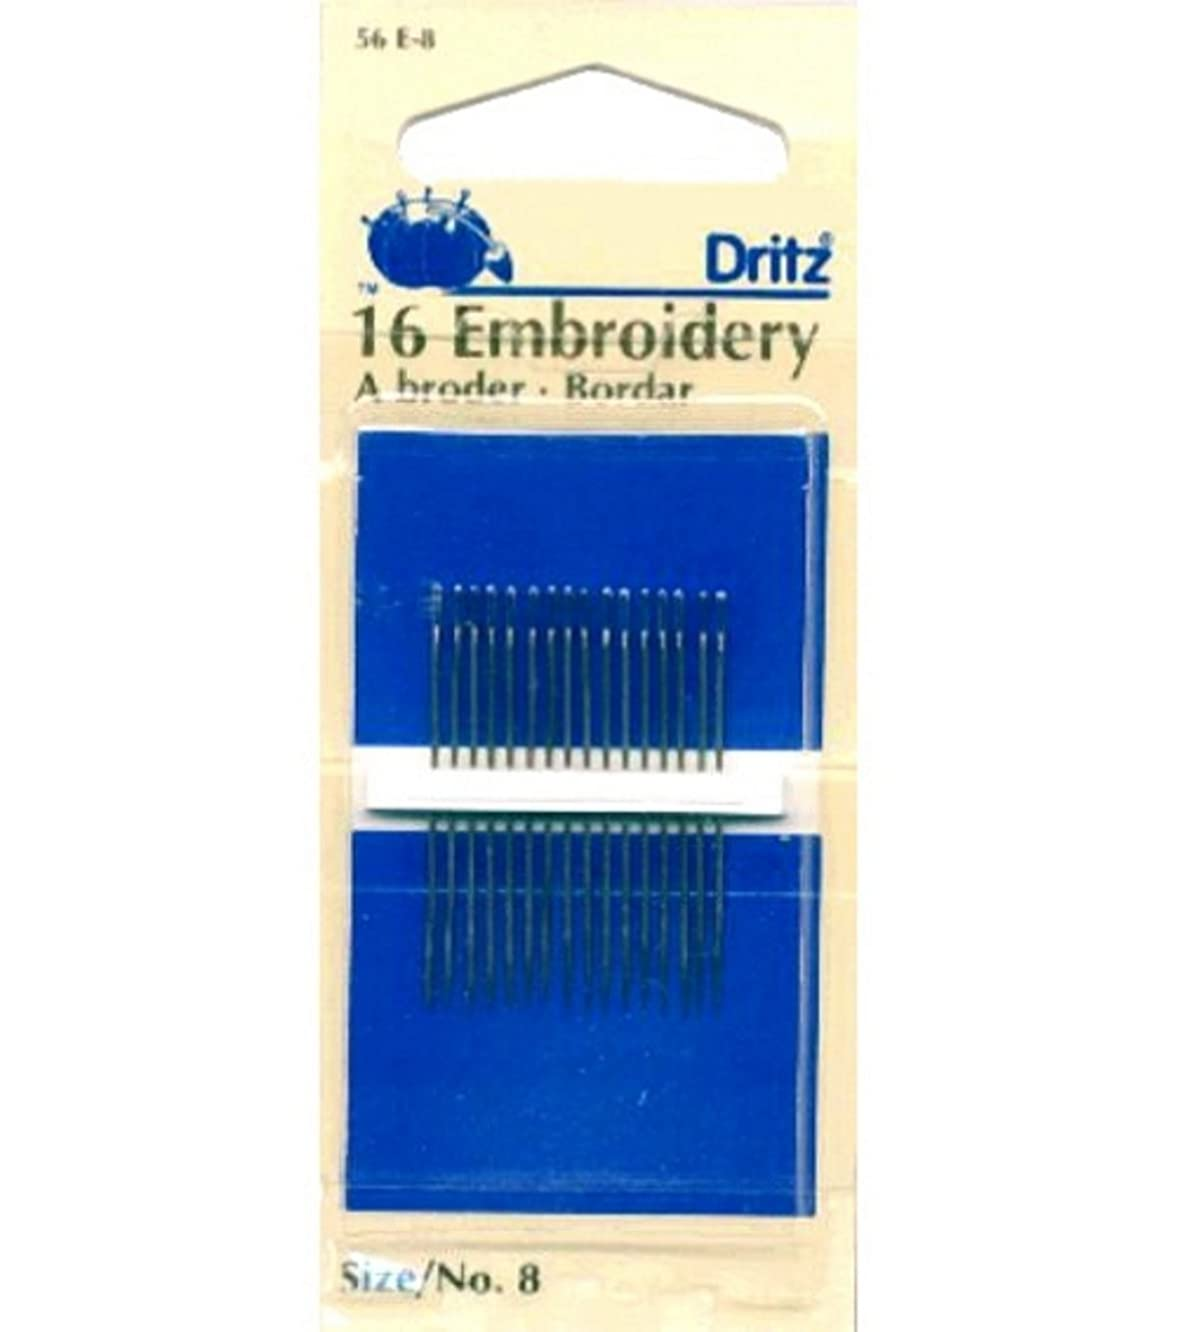 Dritz(R) Embroidery Hand Needles-Size 8 16/Pkg